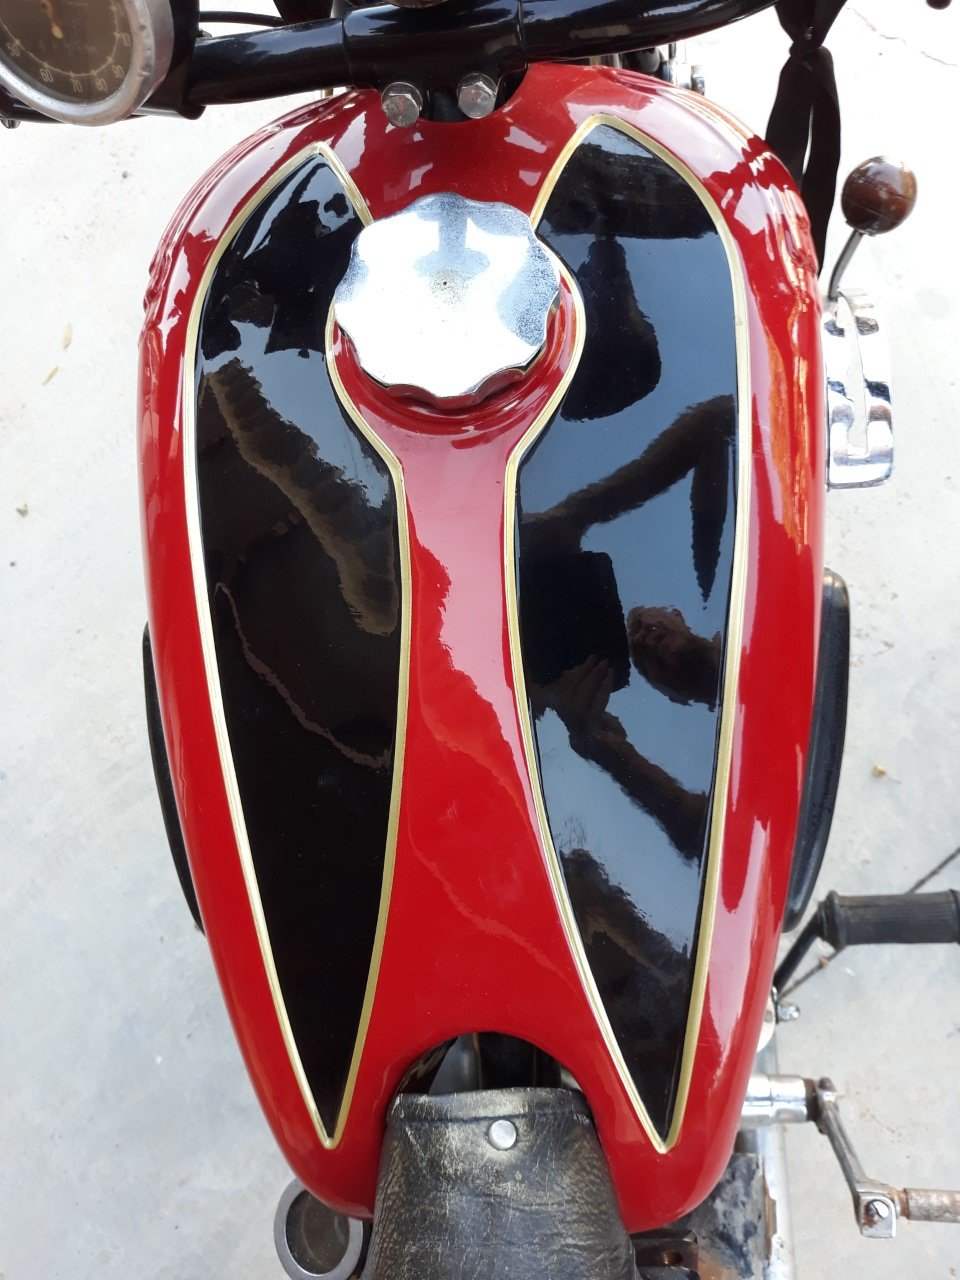 1935 Terrot 500cc. w/ sidecar -very good original cond. For Sale (picture 6 of 6)